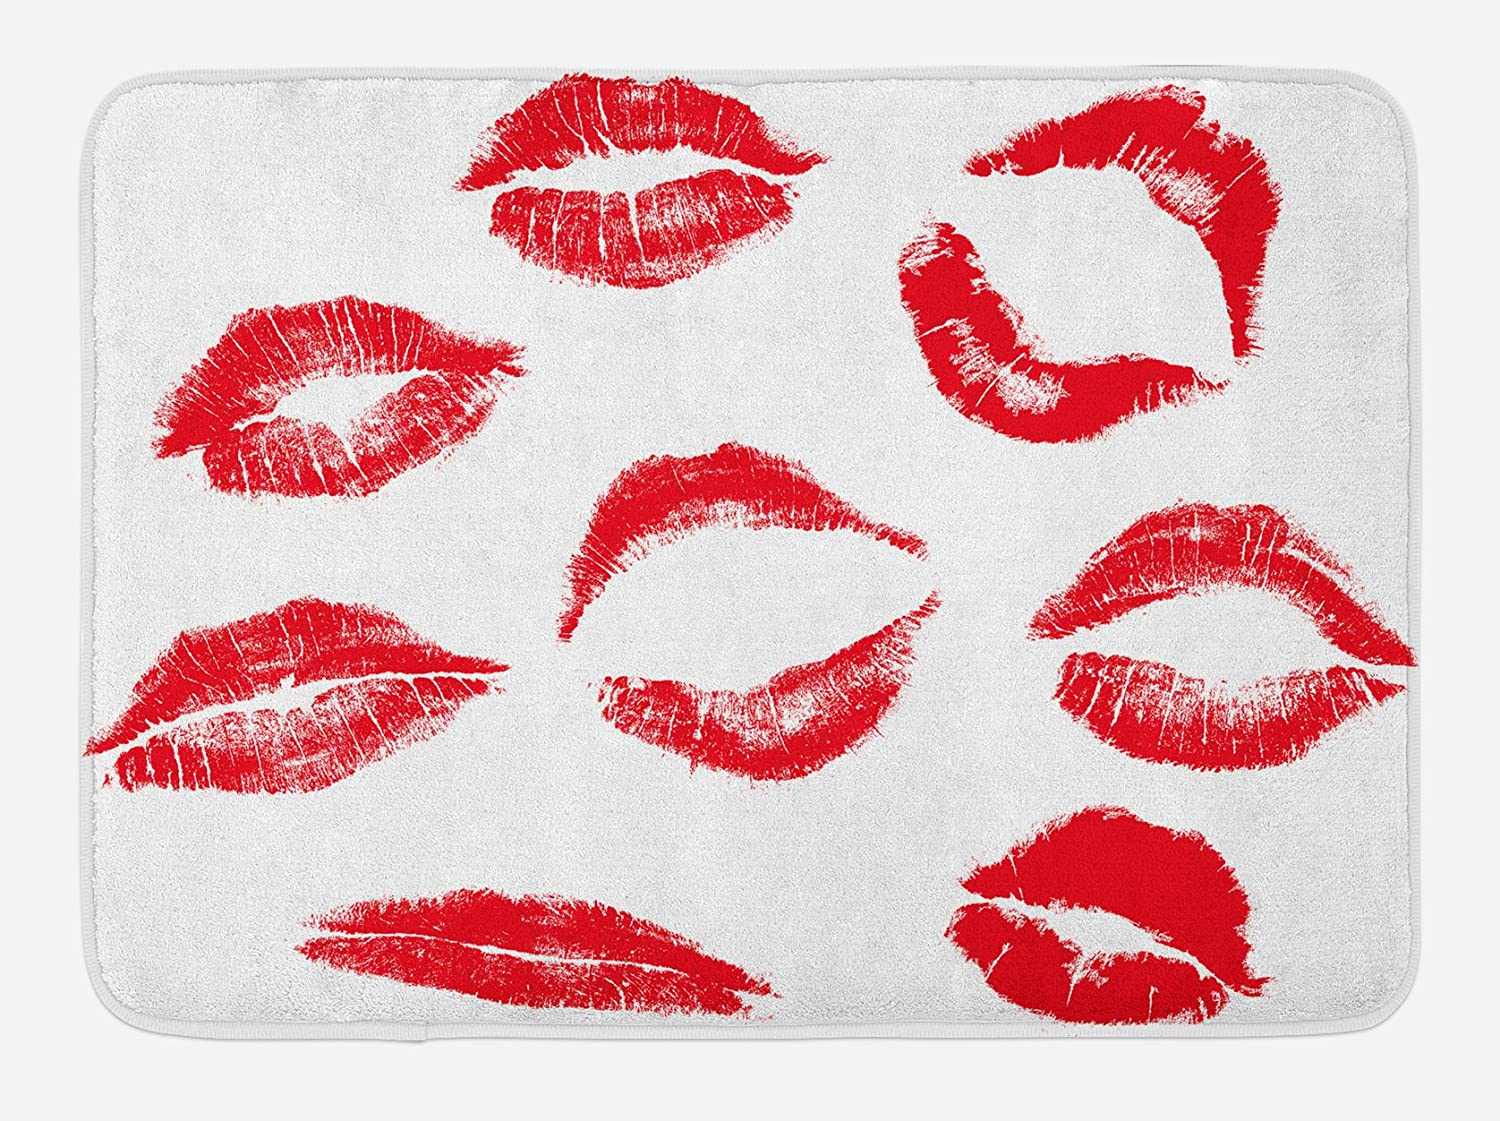 Ambesonne Kiss Bath Mat, Various Different Kiss Marks in Red Woman Seduction Lipstick Trace Worn Grunge Look, Plush Bathroom Decor Mat with Non Slip Backing, 29.5